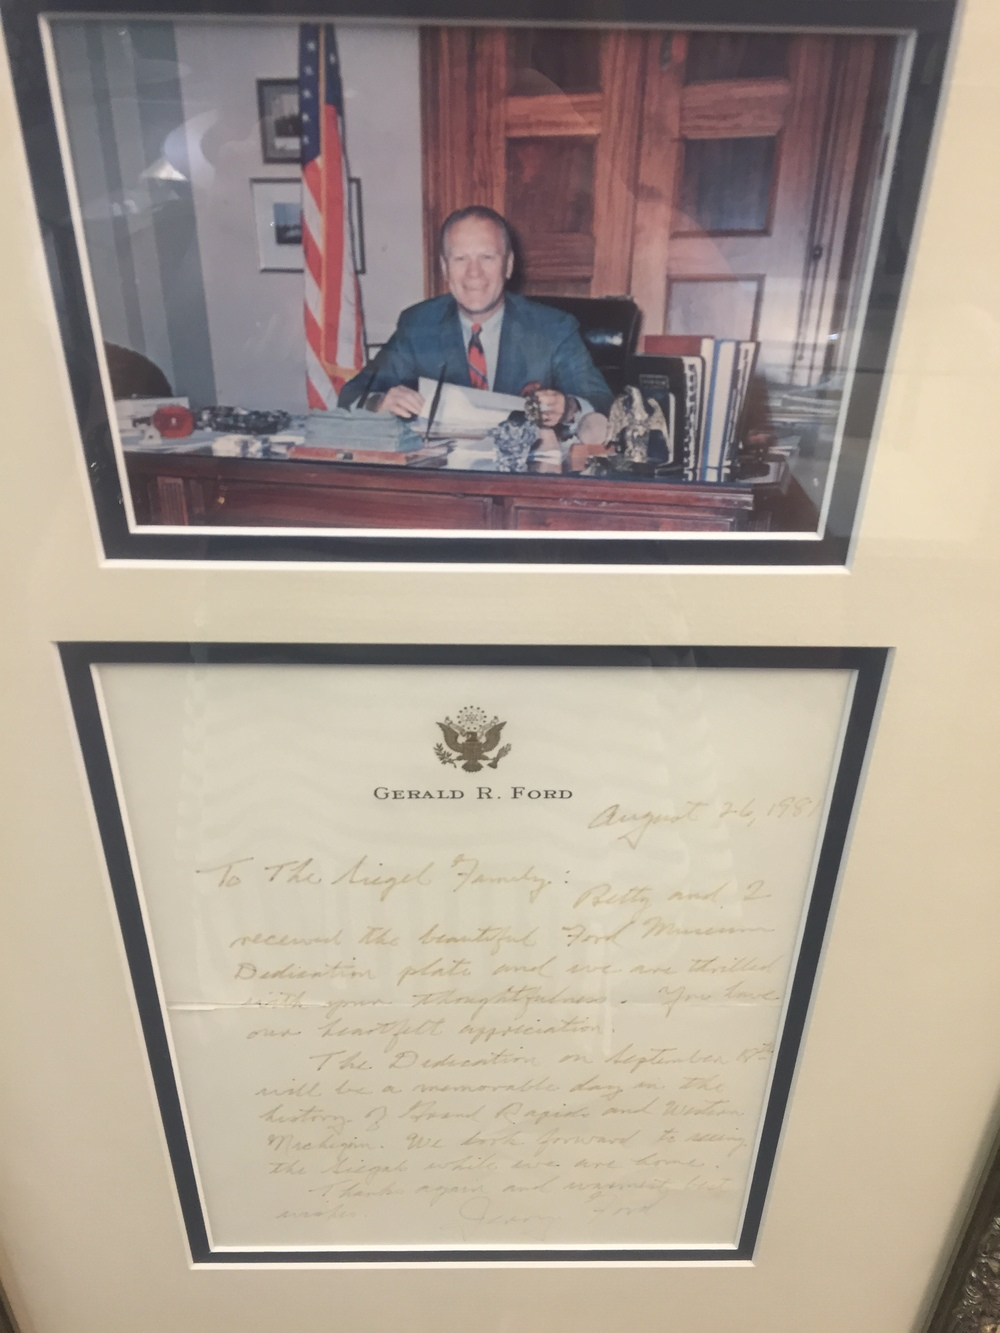 Thank you and good wishes letter from President Gerald R. Ford